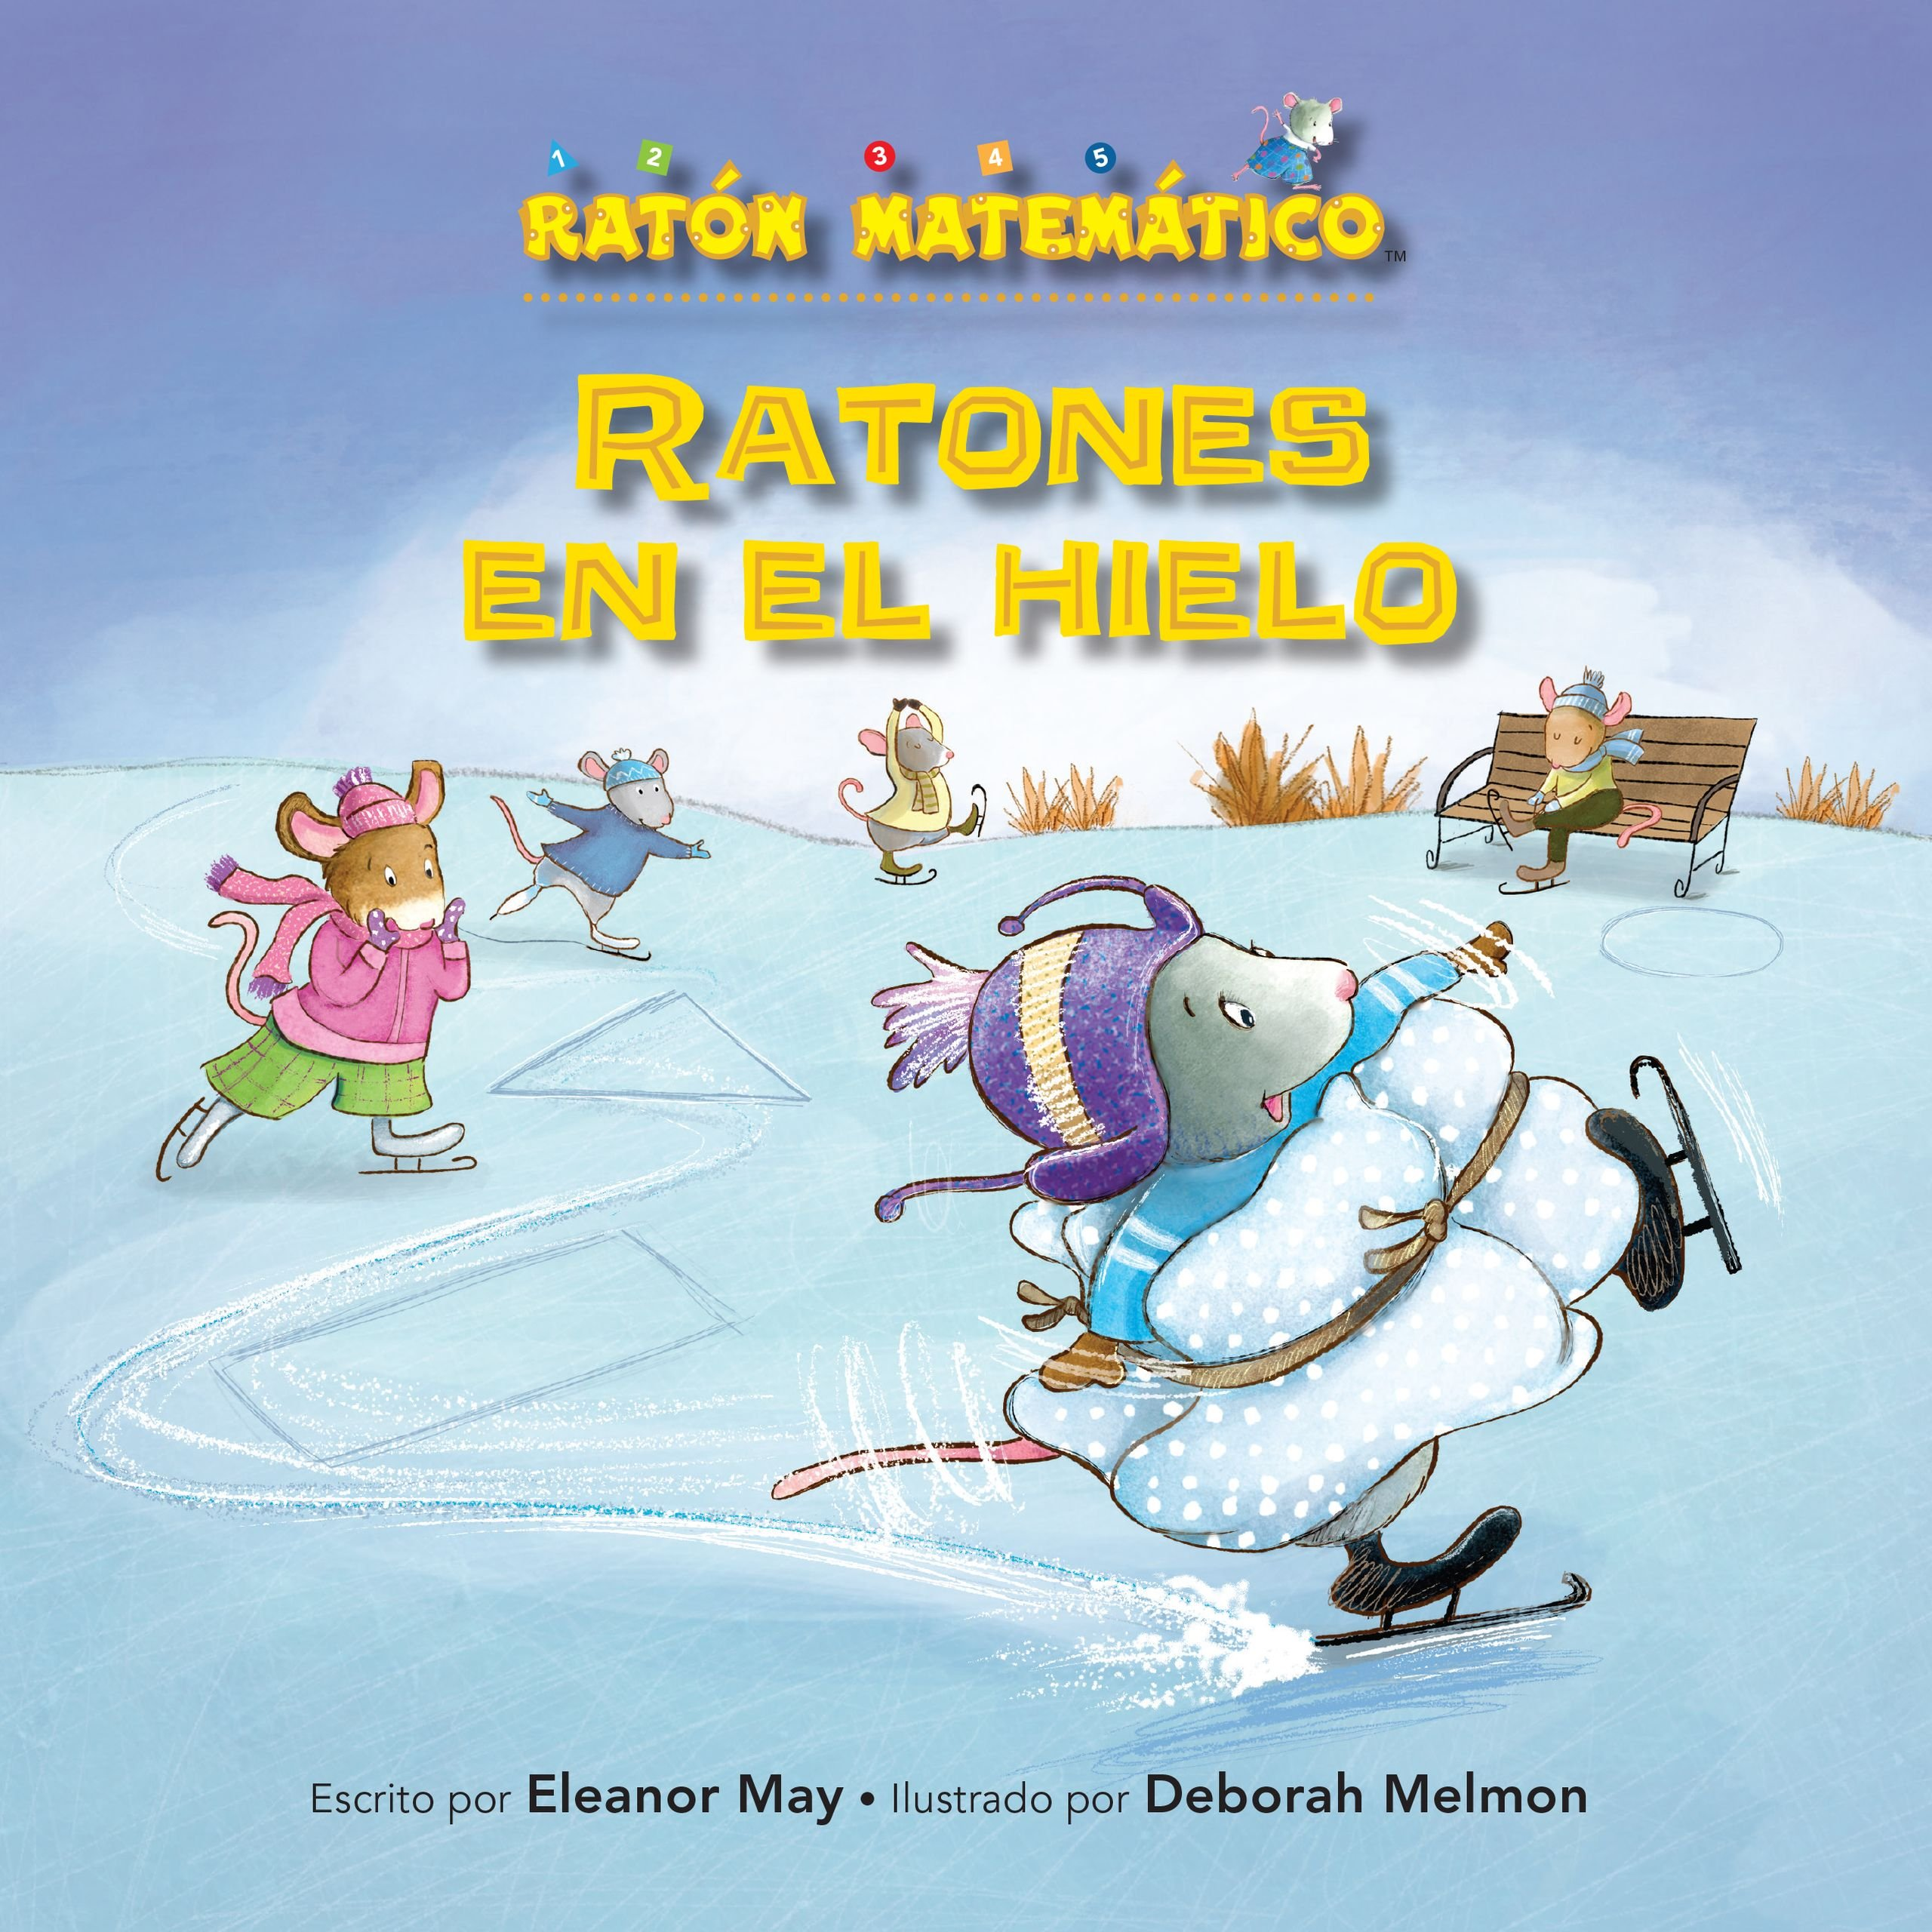 Ratones en el hielo / Mice on Ice: Figuras Planas / 2-d Shapes (Ratón Matemático (Mouse Math)) (Spanish Edition) (Spanish) Paperback – August 1, 2016